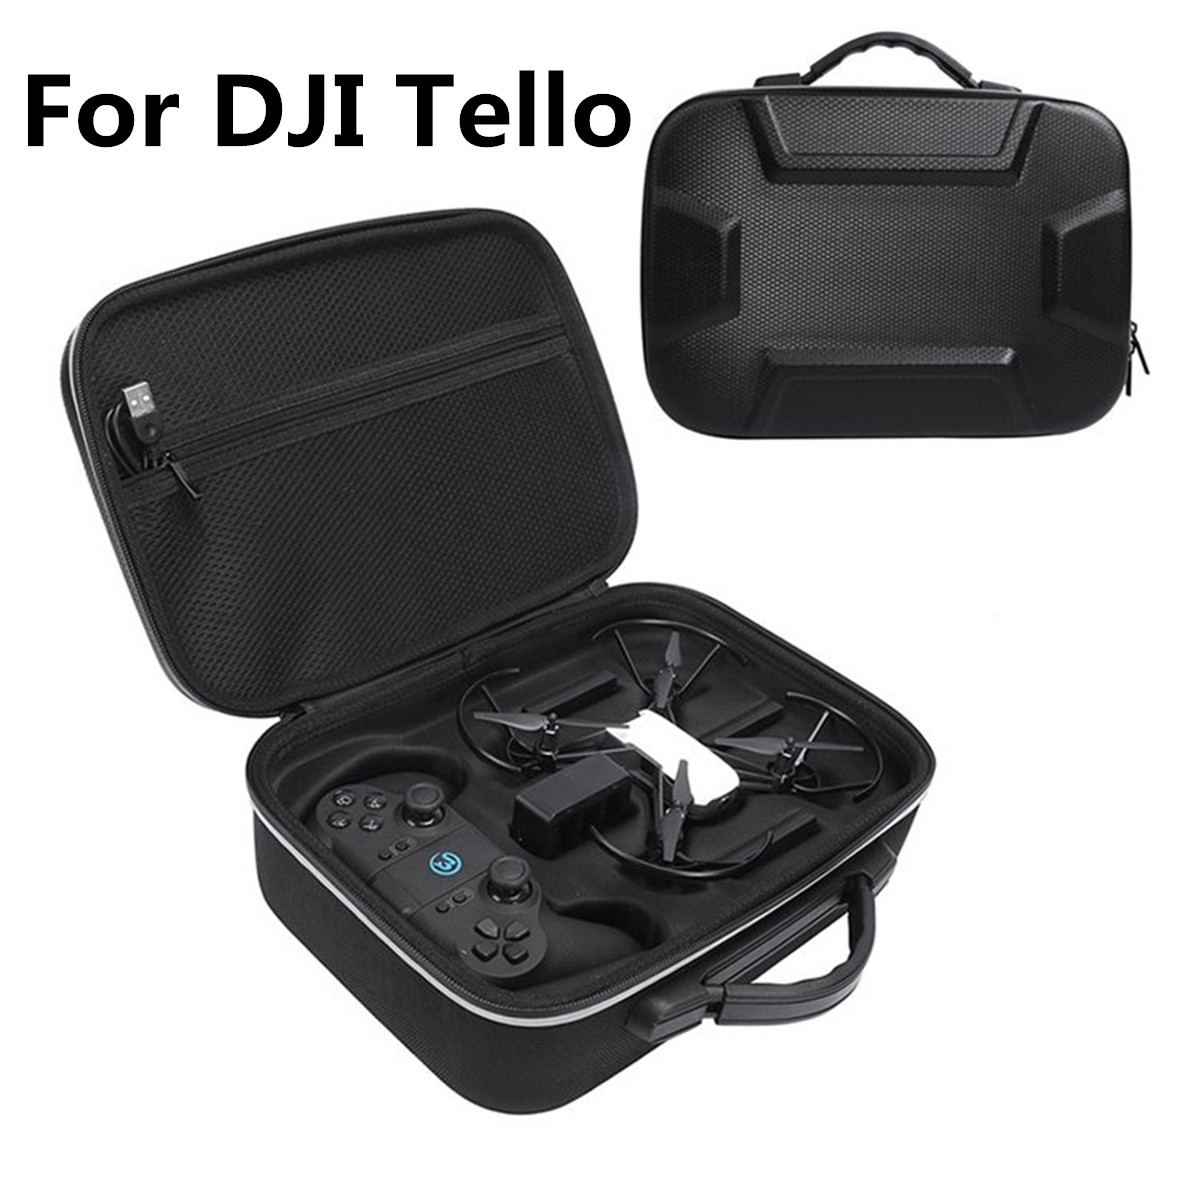 Waterproof Travel PU EVA Carry Bag For DJI Tello EDU Protective Storage Case for DJI Tello Drone Portable handbag Box Black